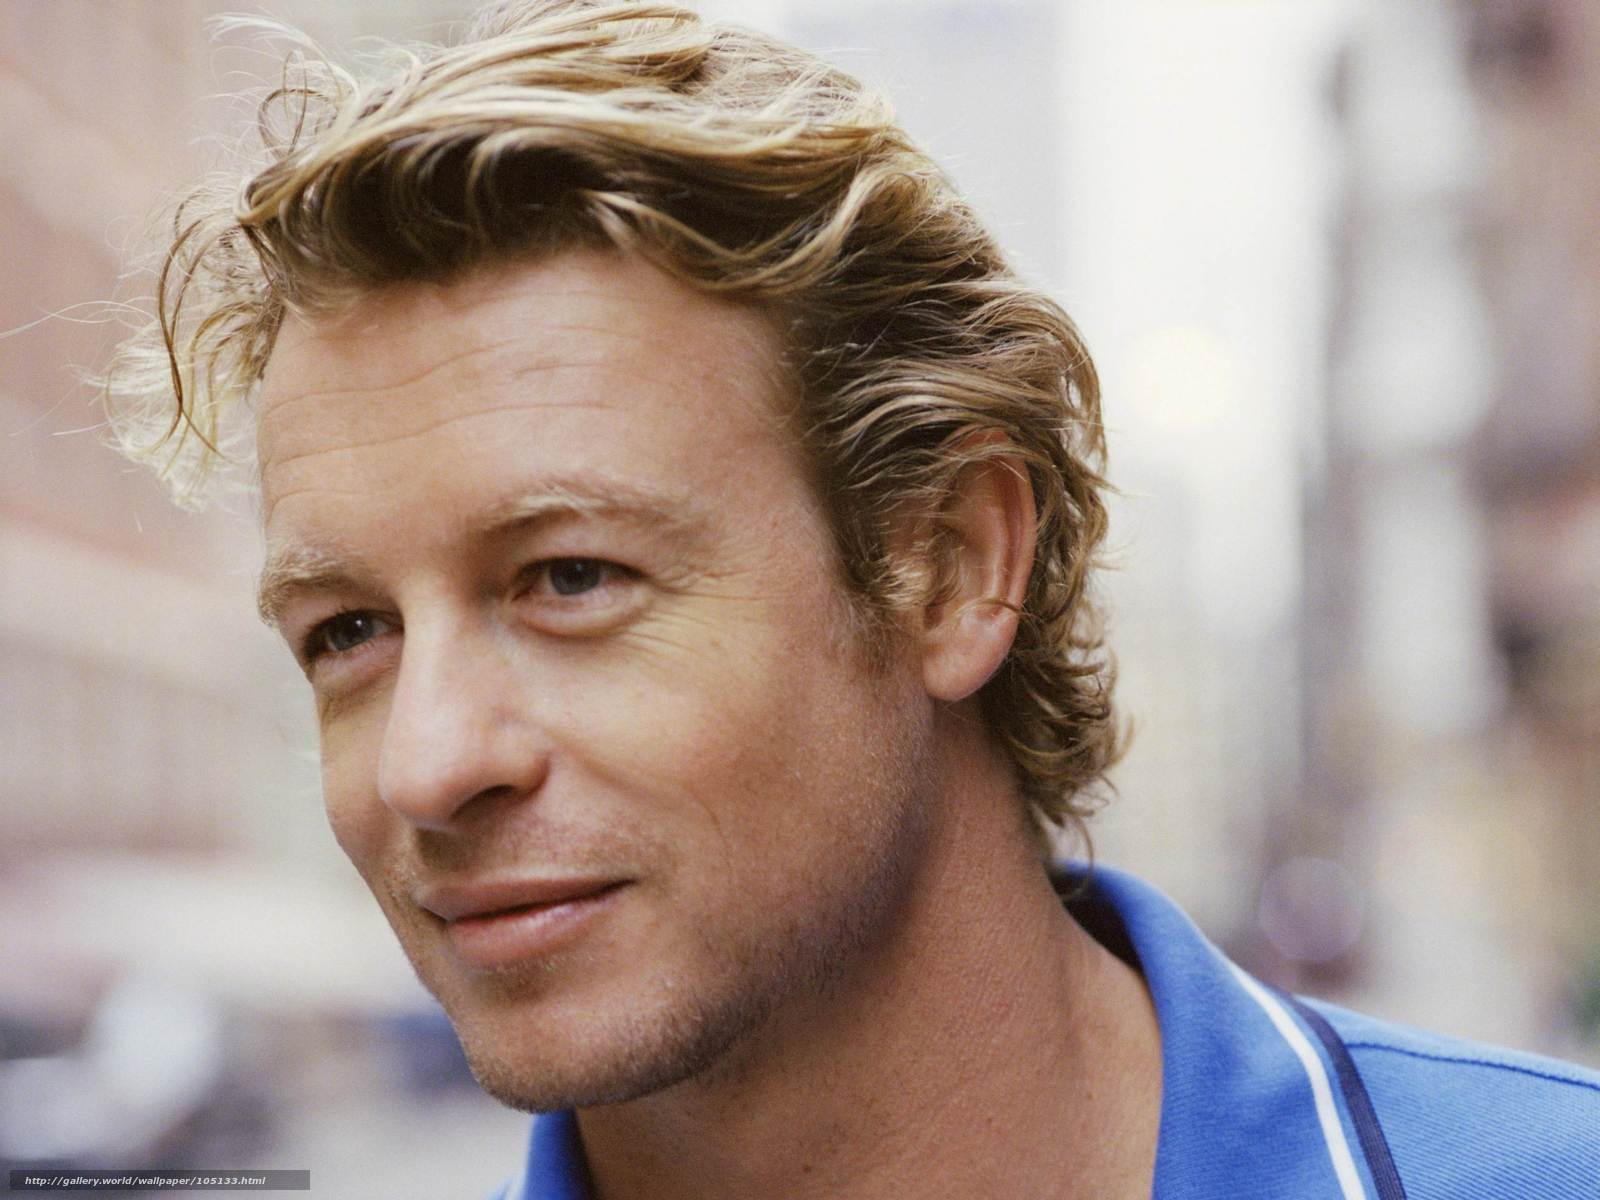 Robert Baker (actor) Wallpapers Download wallpaper Simon Baker Simon Baker Actor Movie Star free